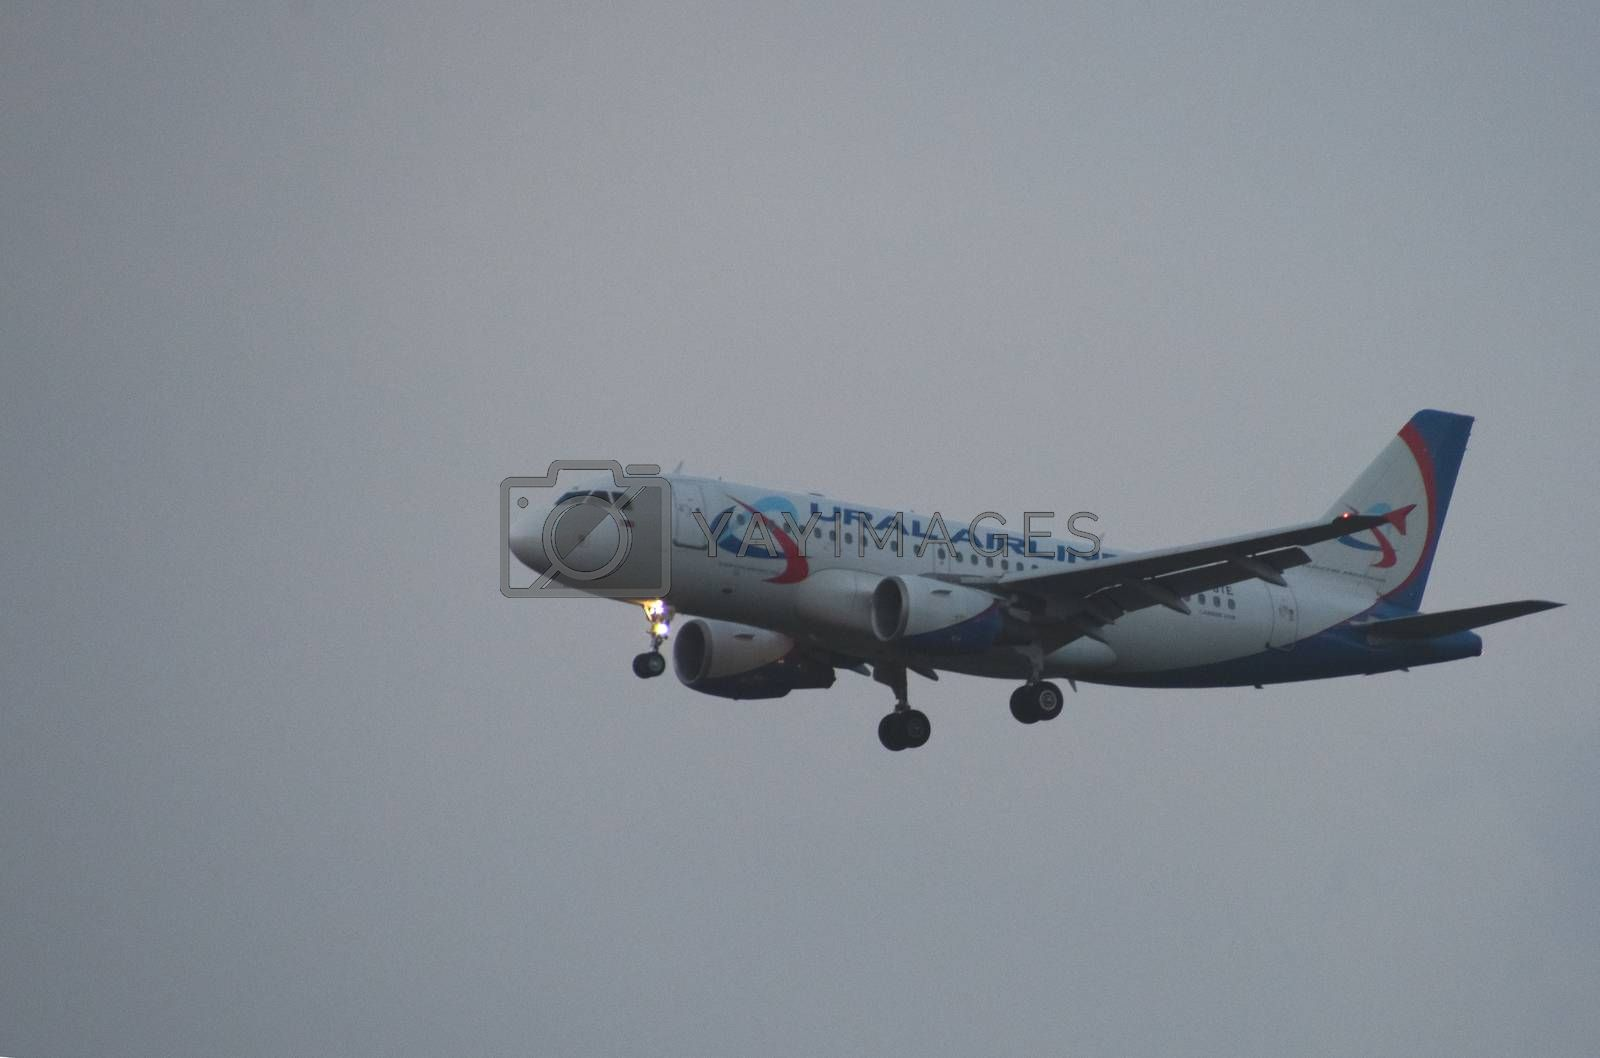 8 JULY 2018 Russia, Moscow. The aircraft Airbus A319 Ural Airlines is landing at the Domodedovo airport.